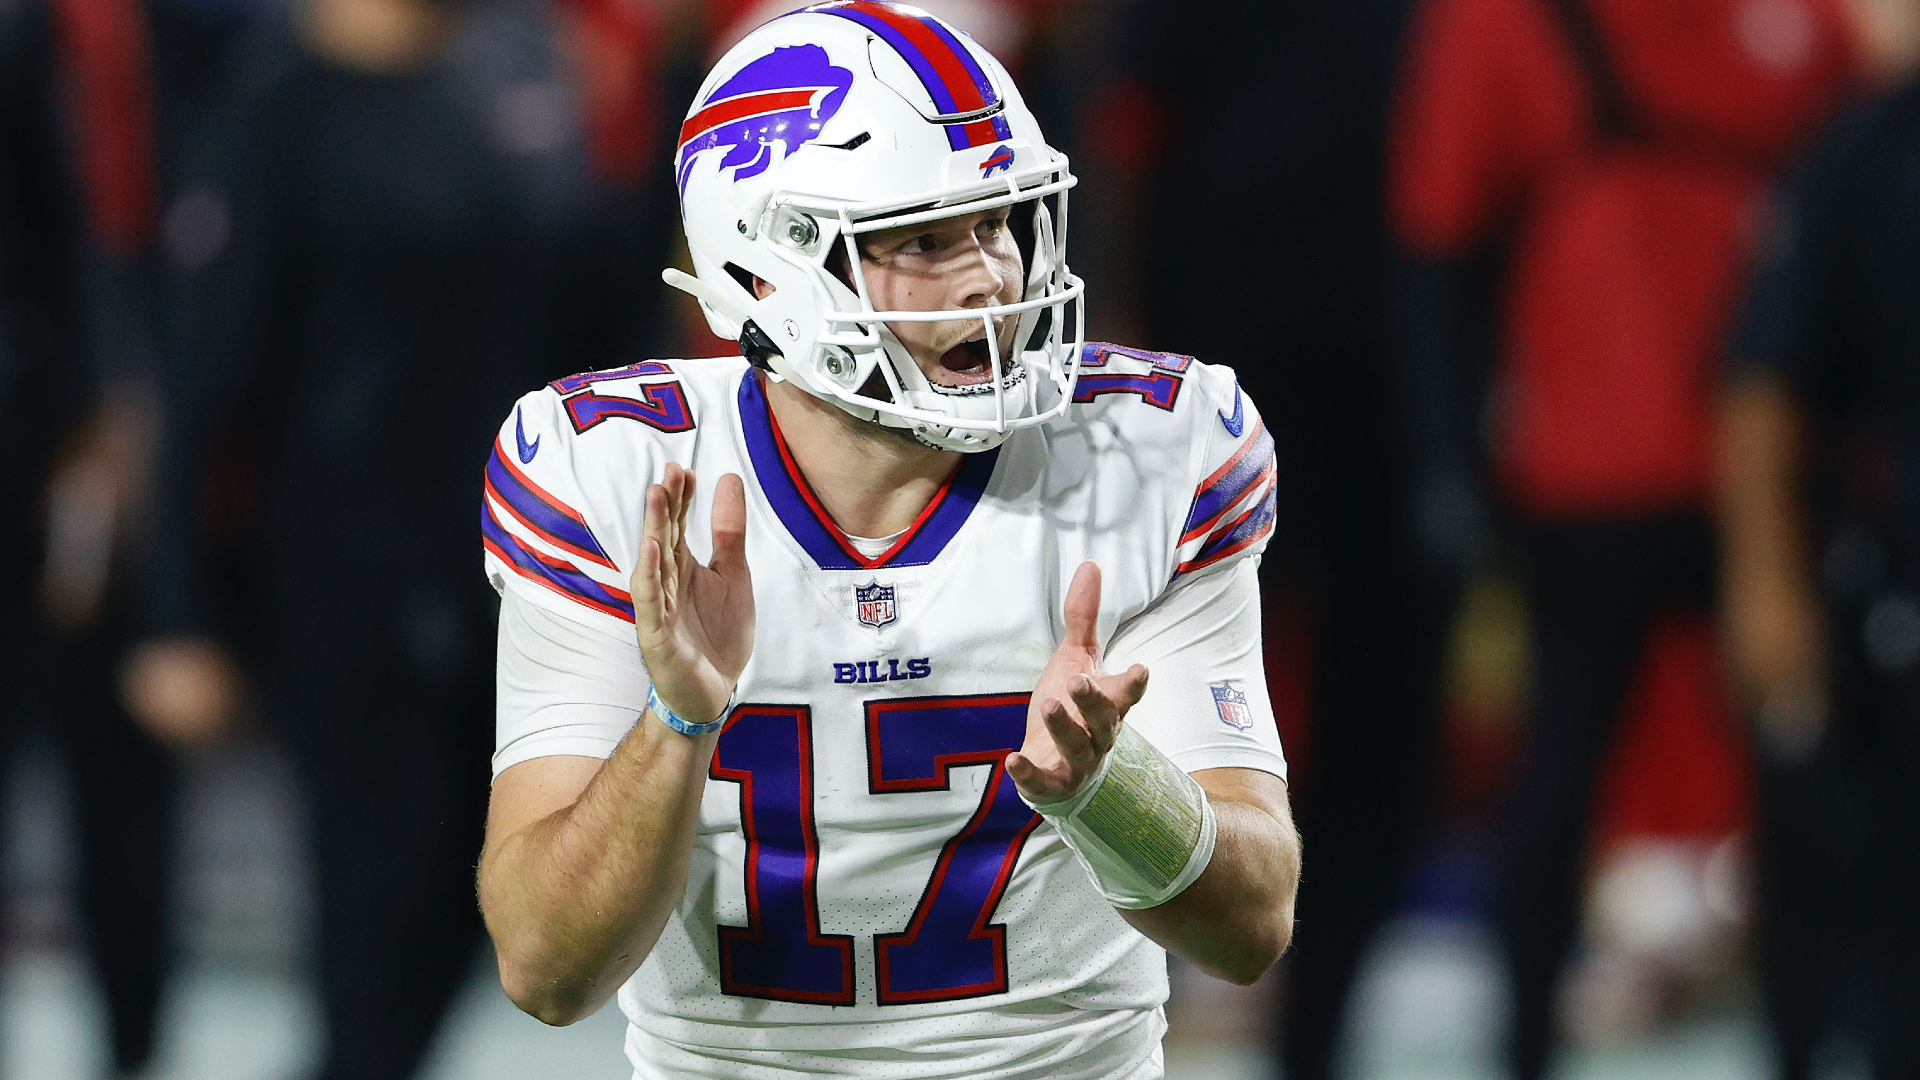 Josh Allen flops, draws roughing the passer call and James Harden comparisons vs. Ravens » TechnoCodex